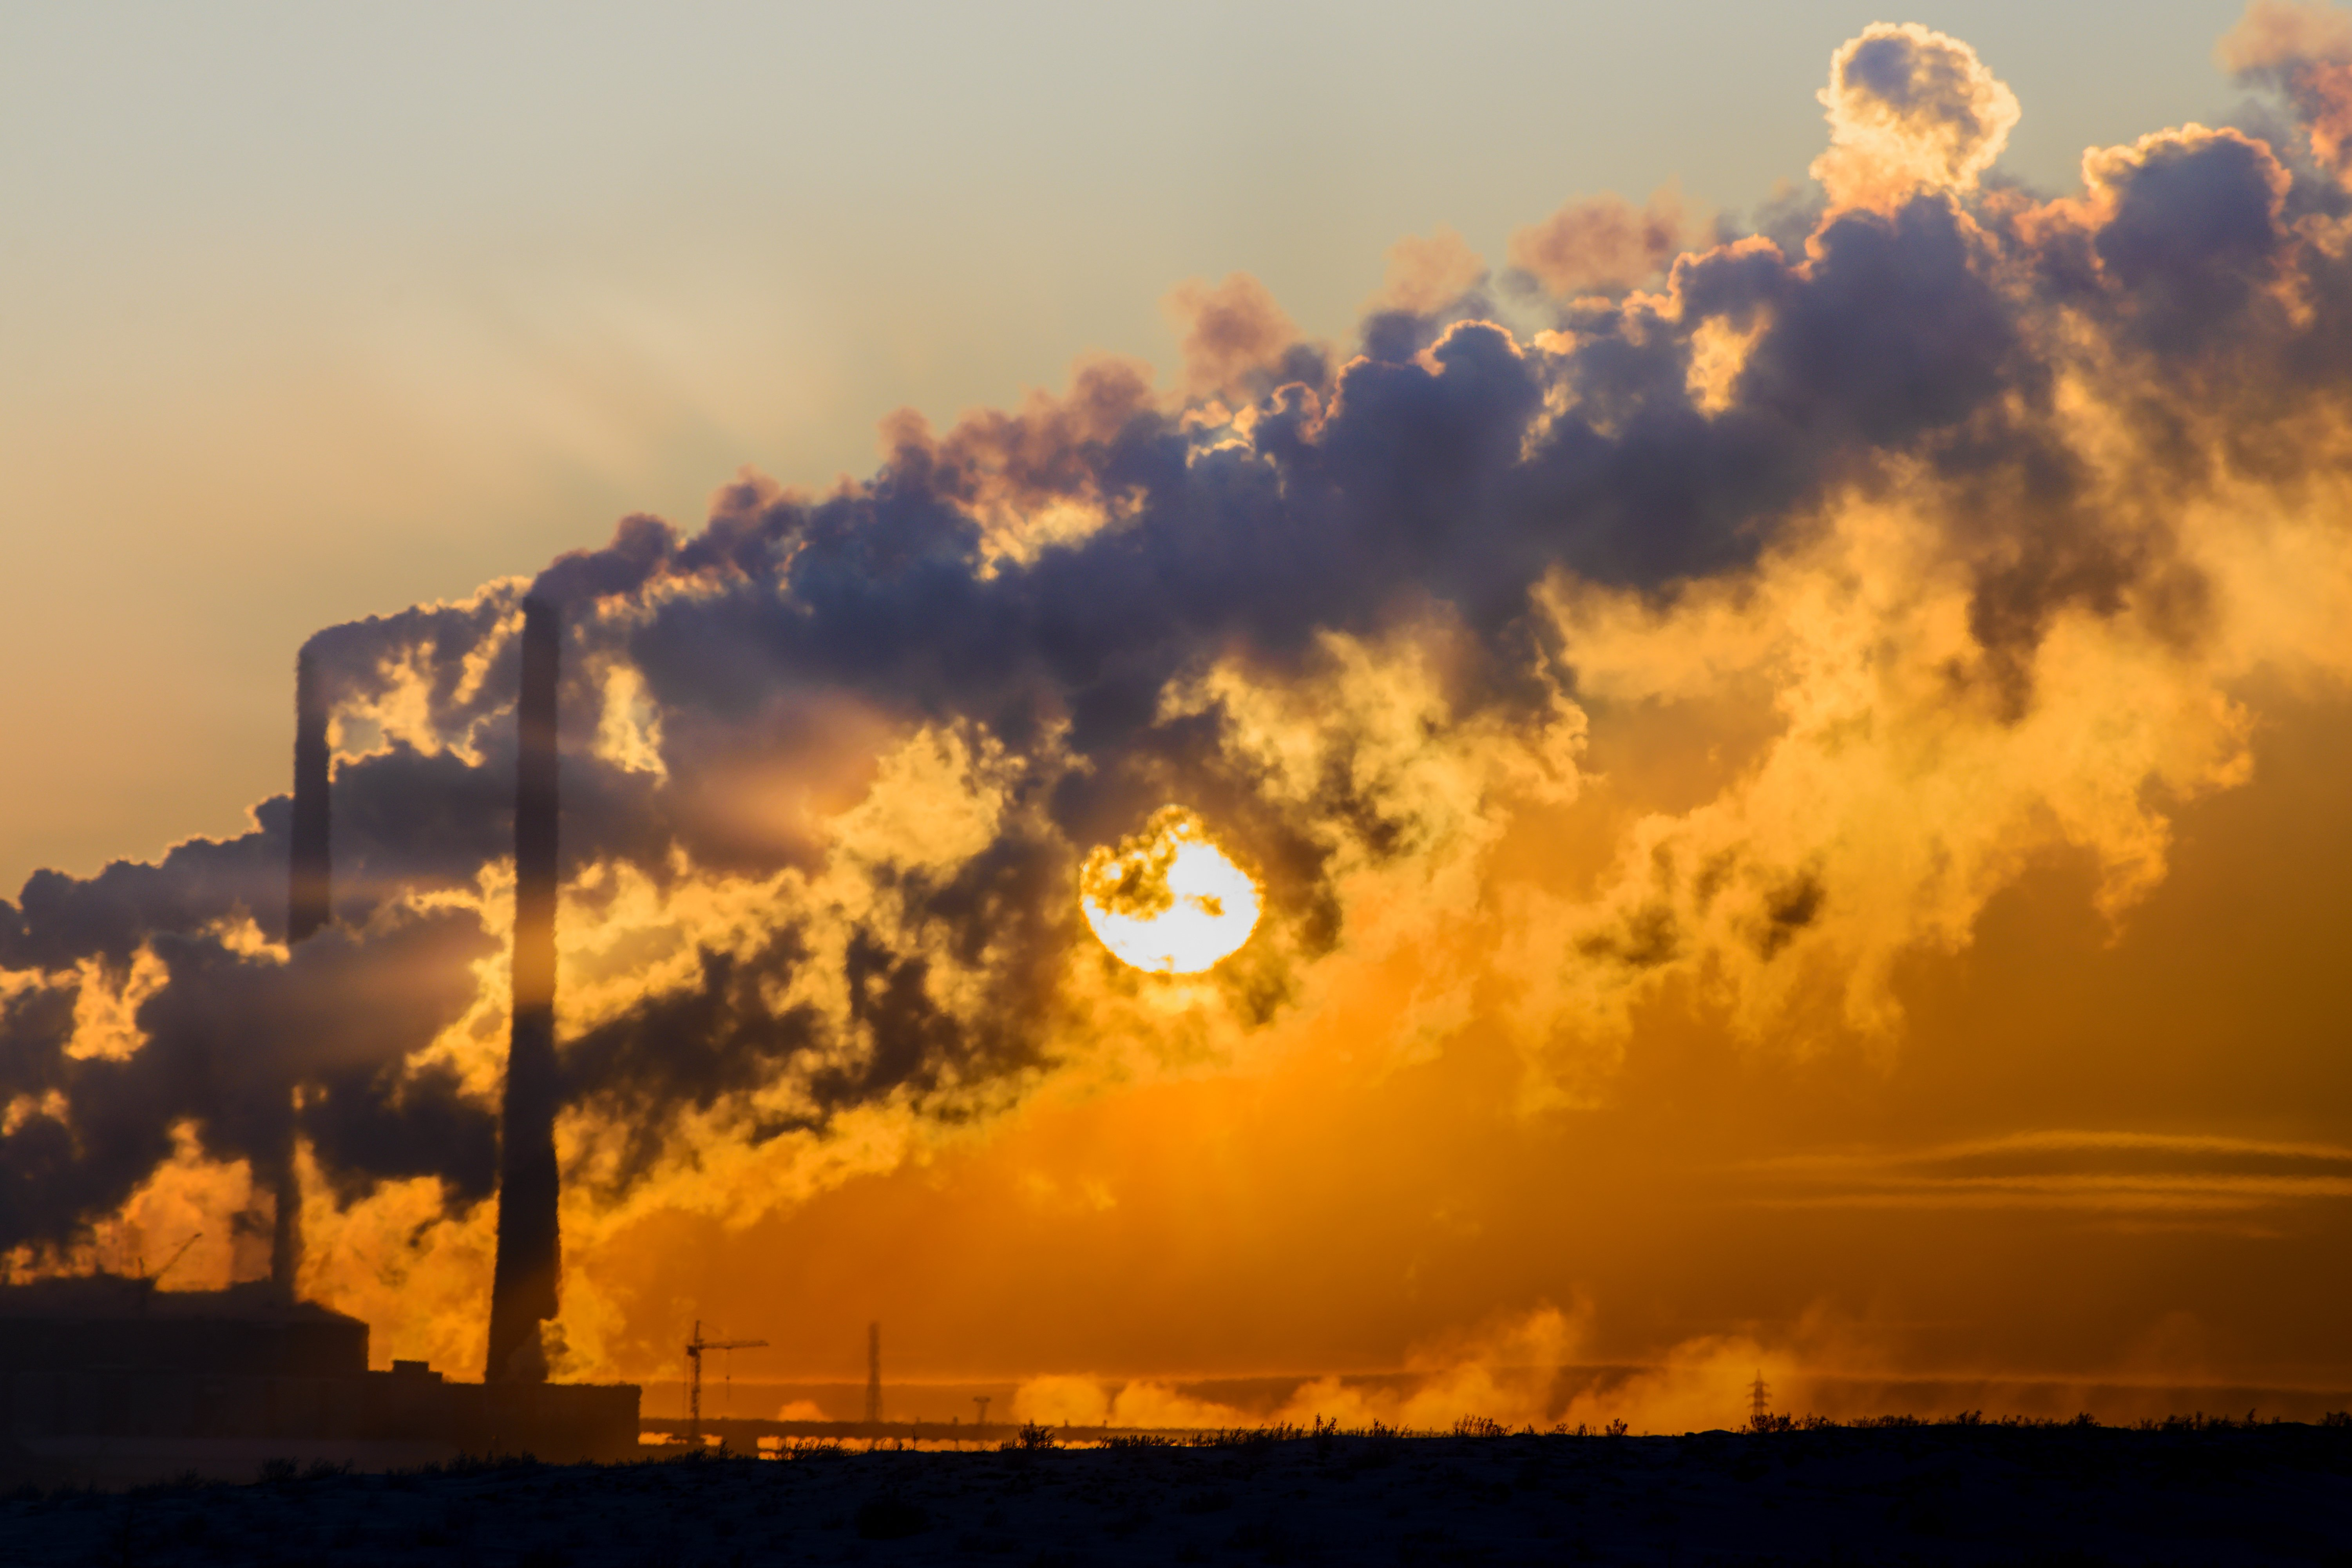 New industrial poisons may threaten Arctic environment, says study